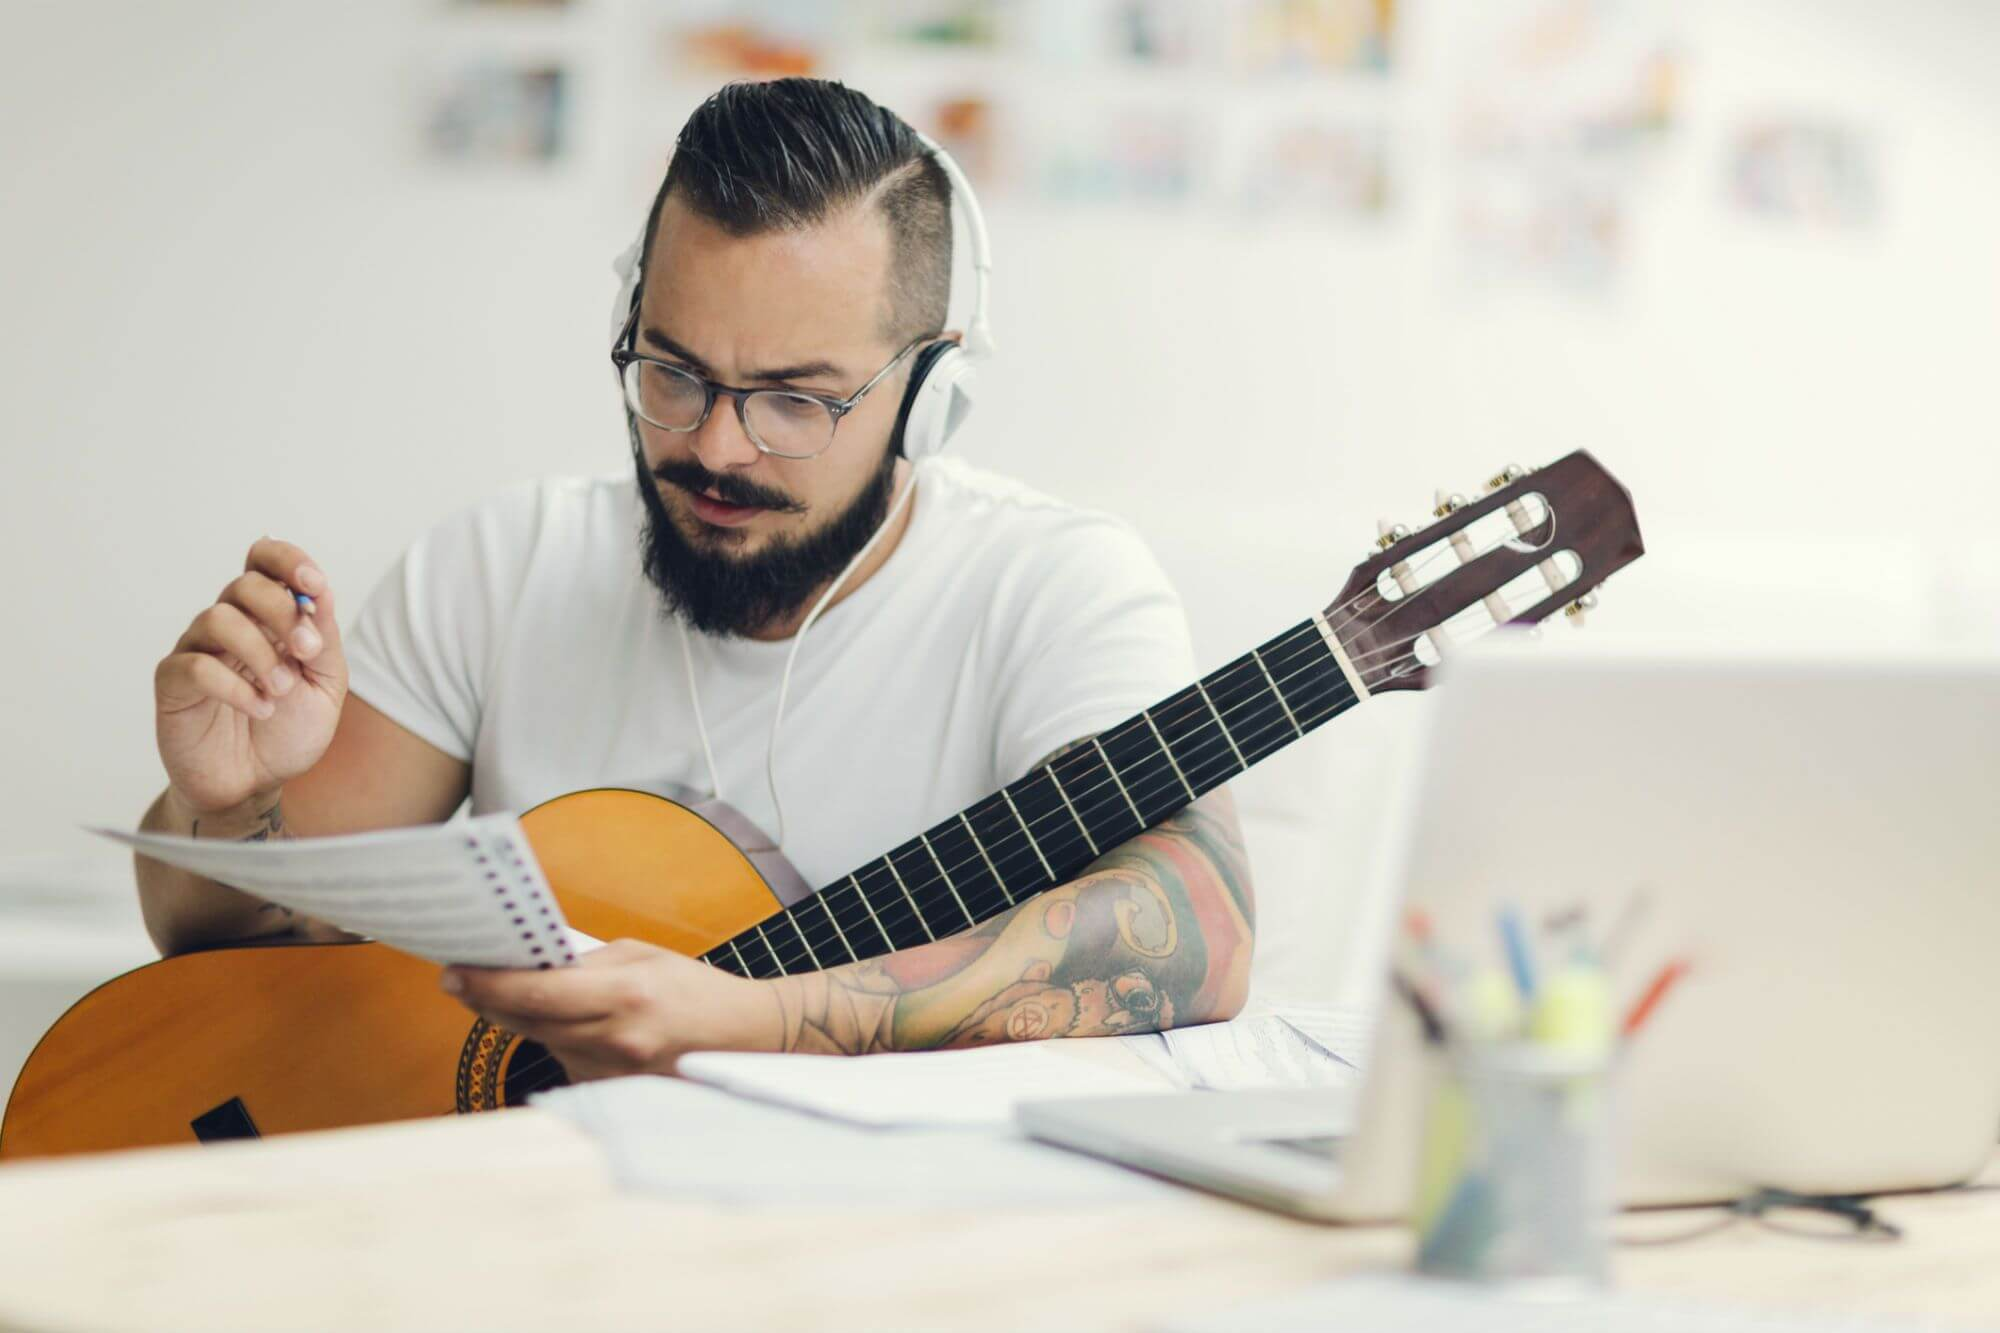 Arrange Chords in Your Songwriting